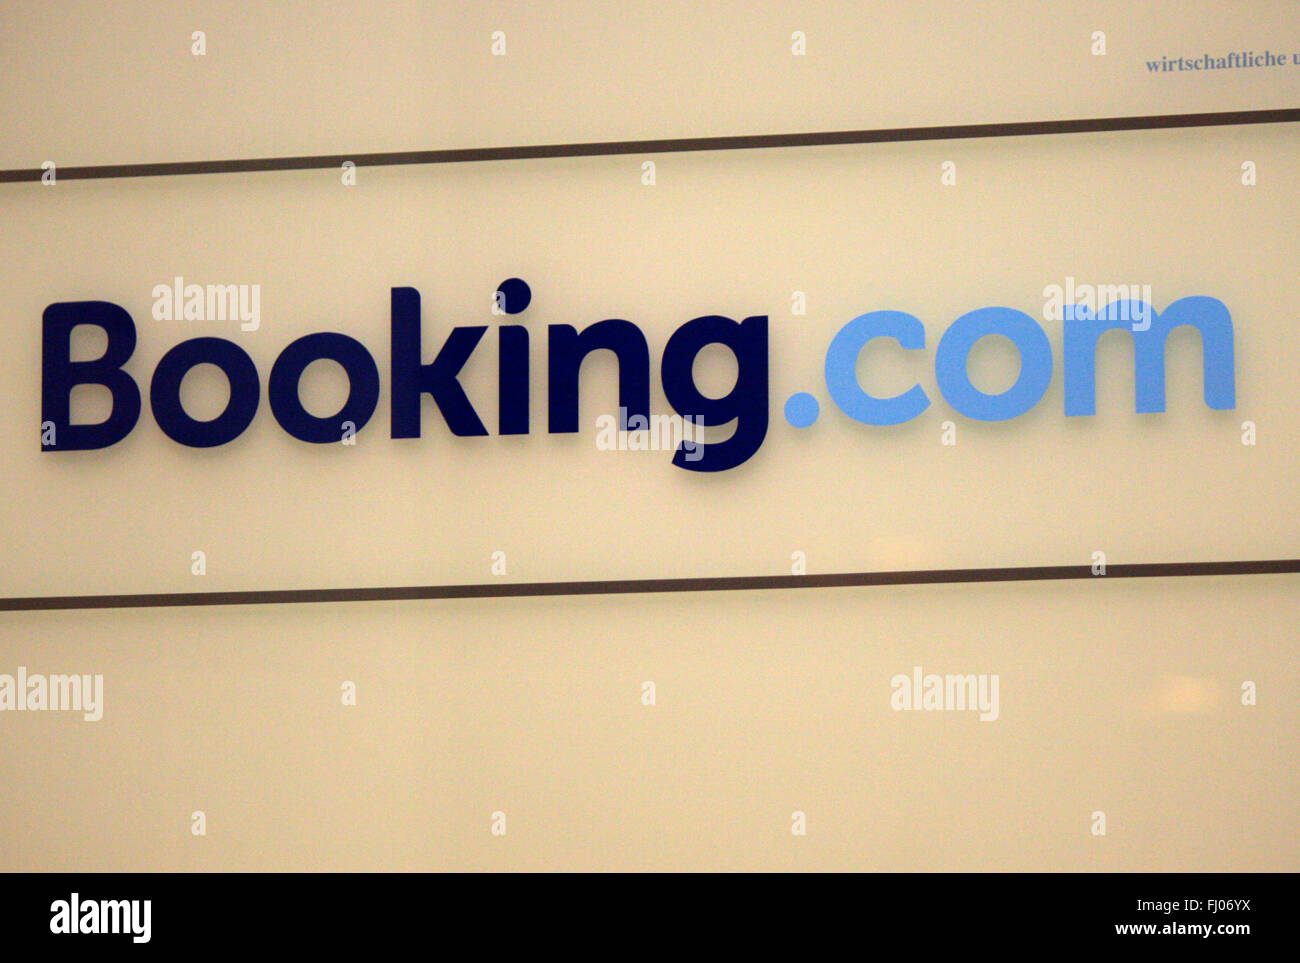 «Booking.com', Markenname : Berlin. Photo Stock